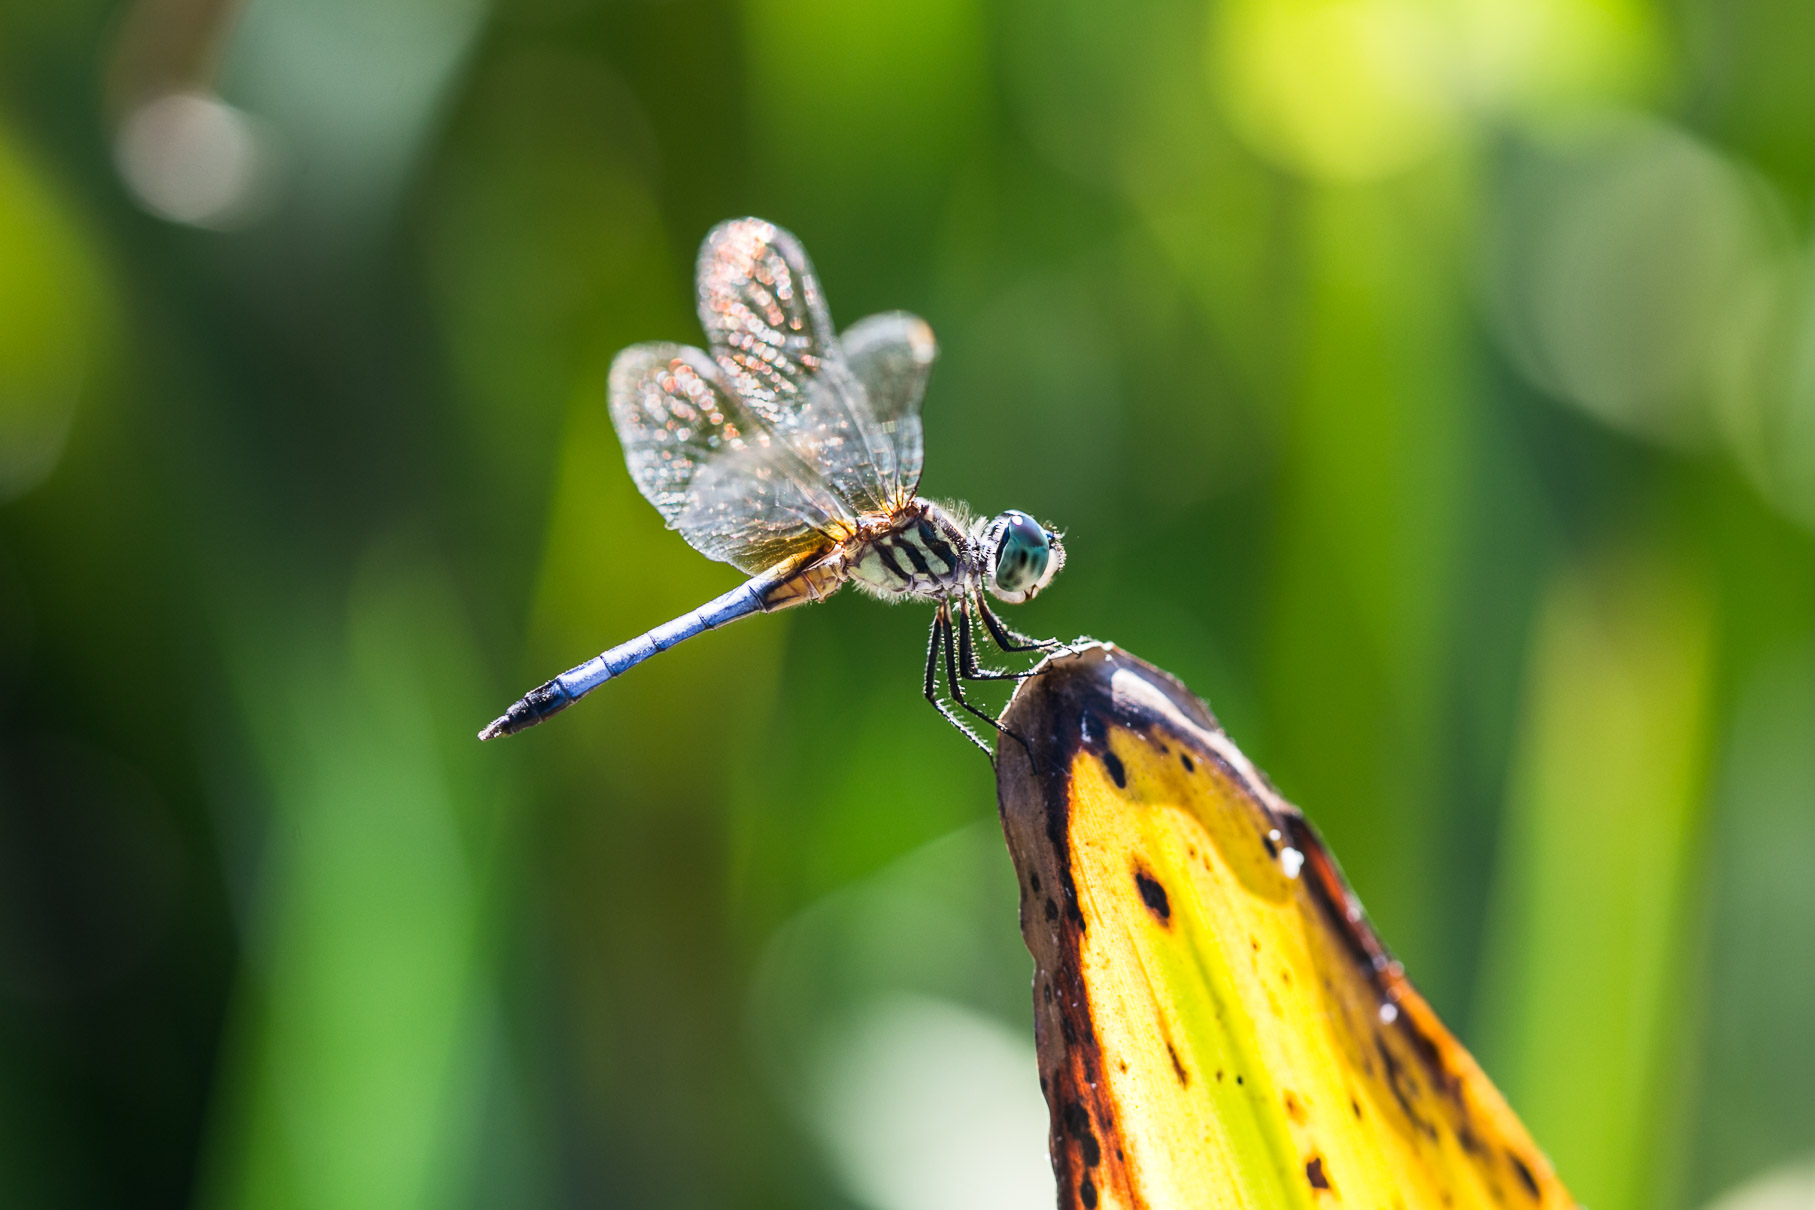 alexa-wright-color-photography-dragonfly.jpg